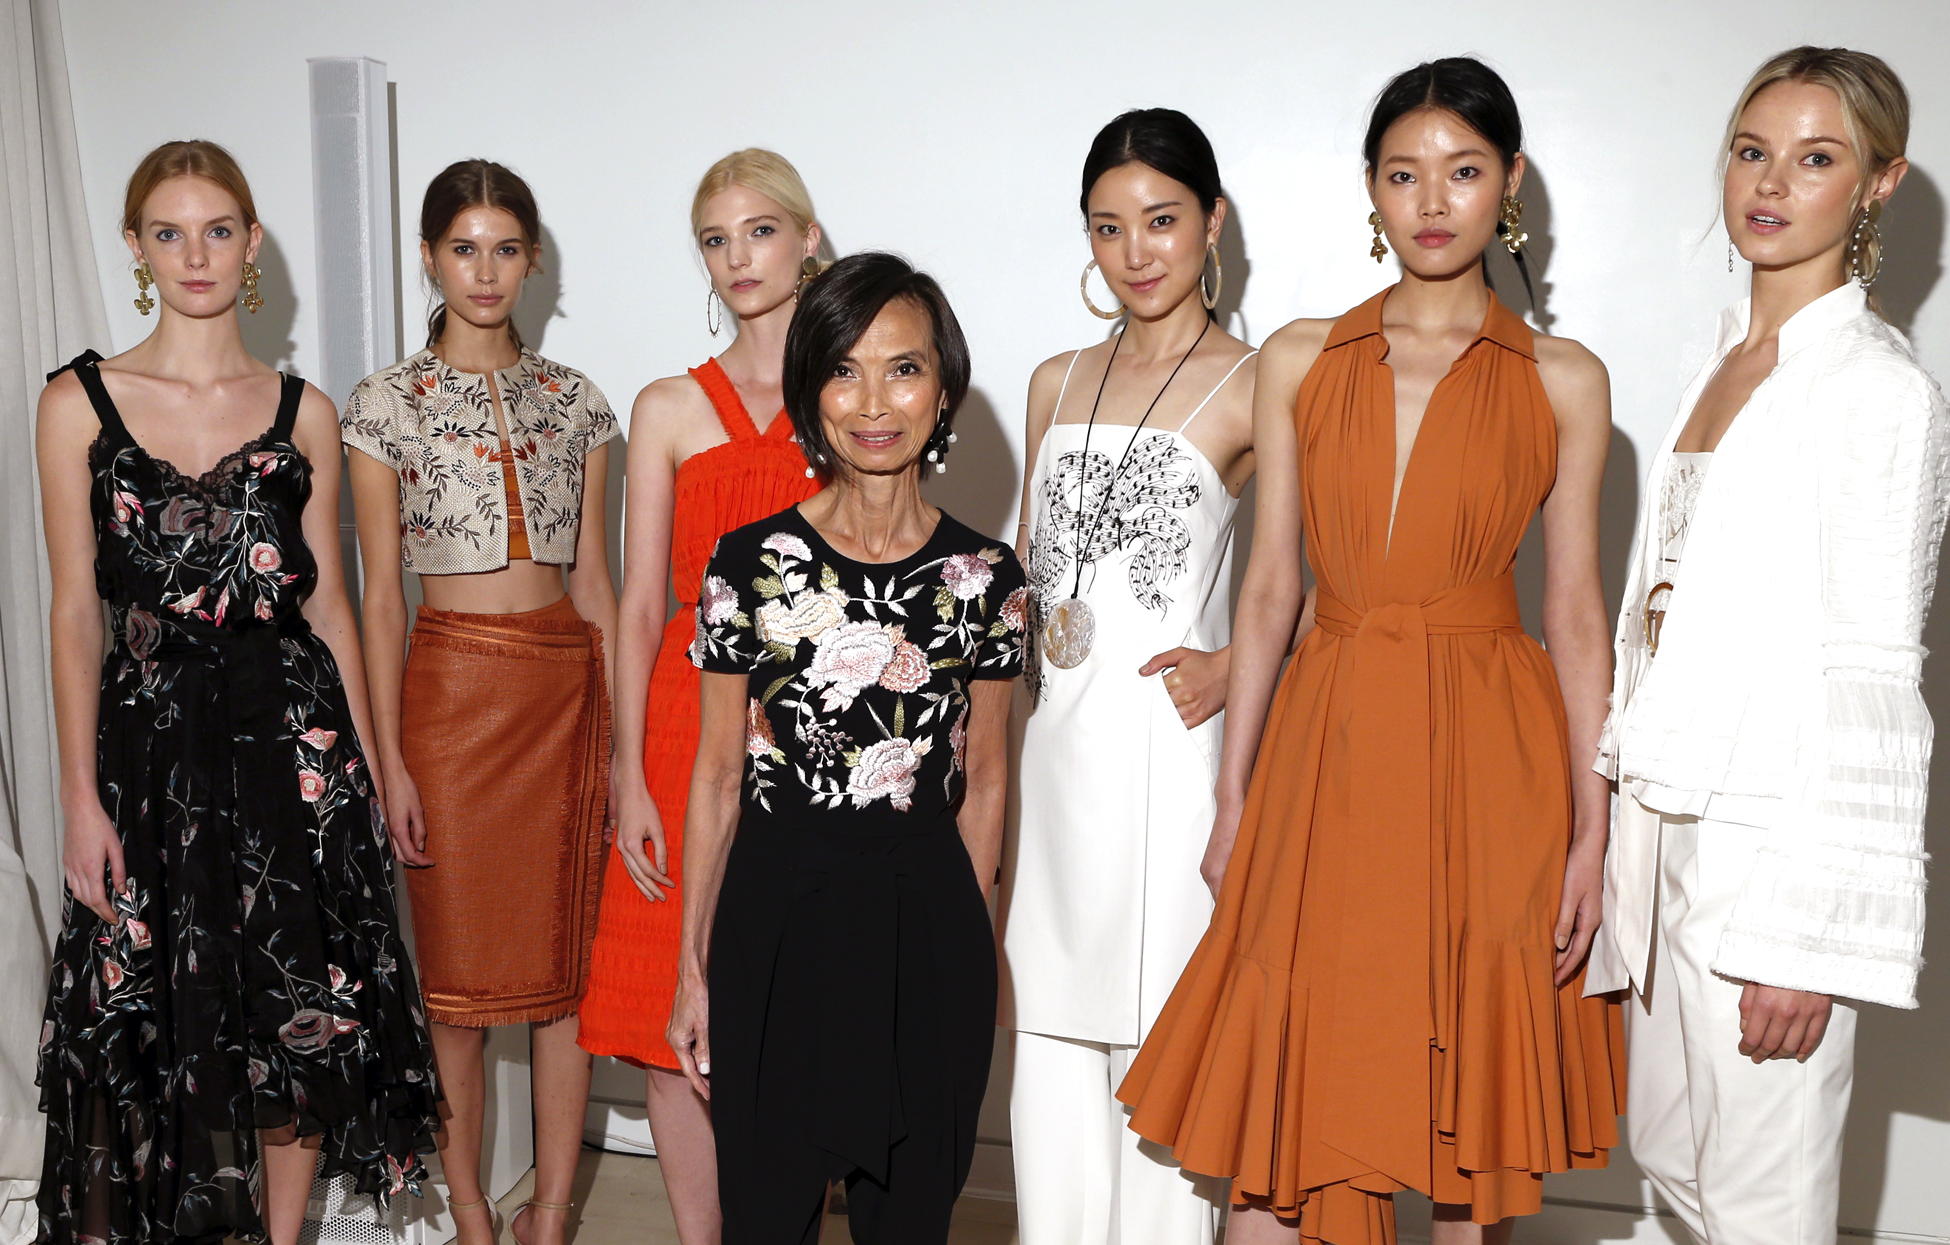 Josie Natori with models wearing looks from her Spring '17 collection.